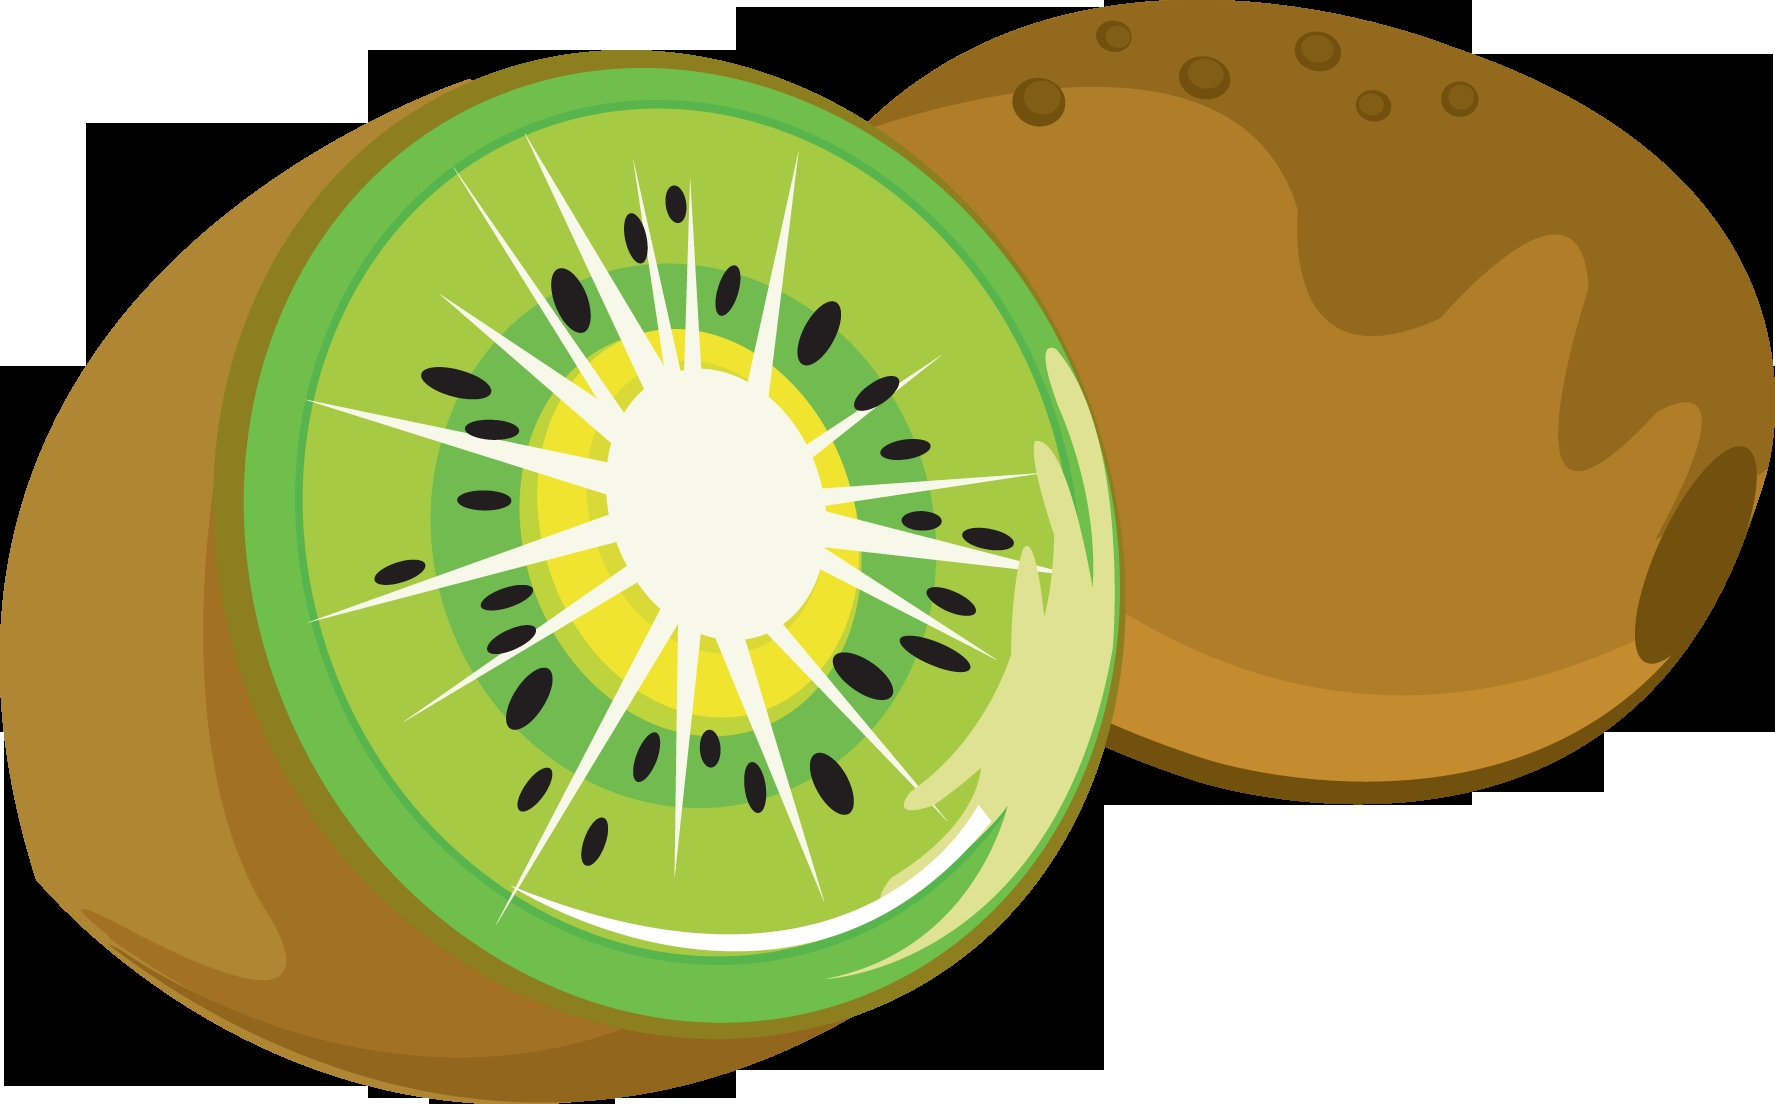 1775x1104 Awesome Kiwi Clipart Design